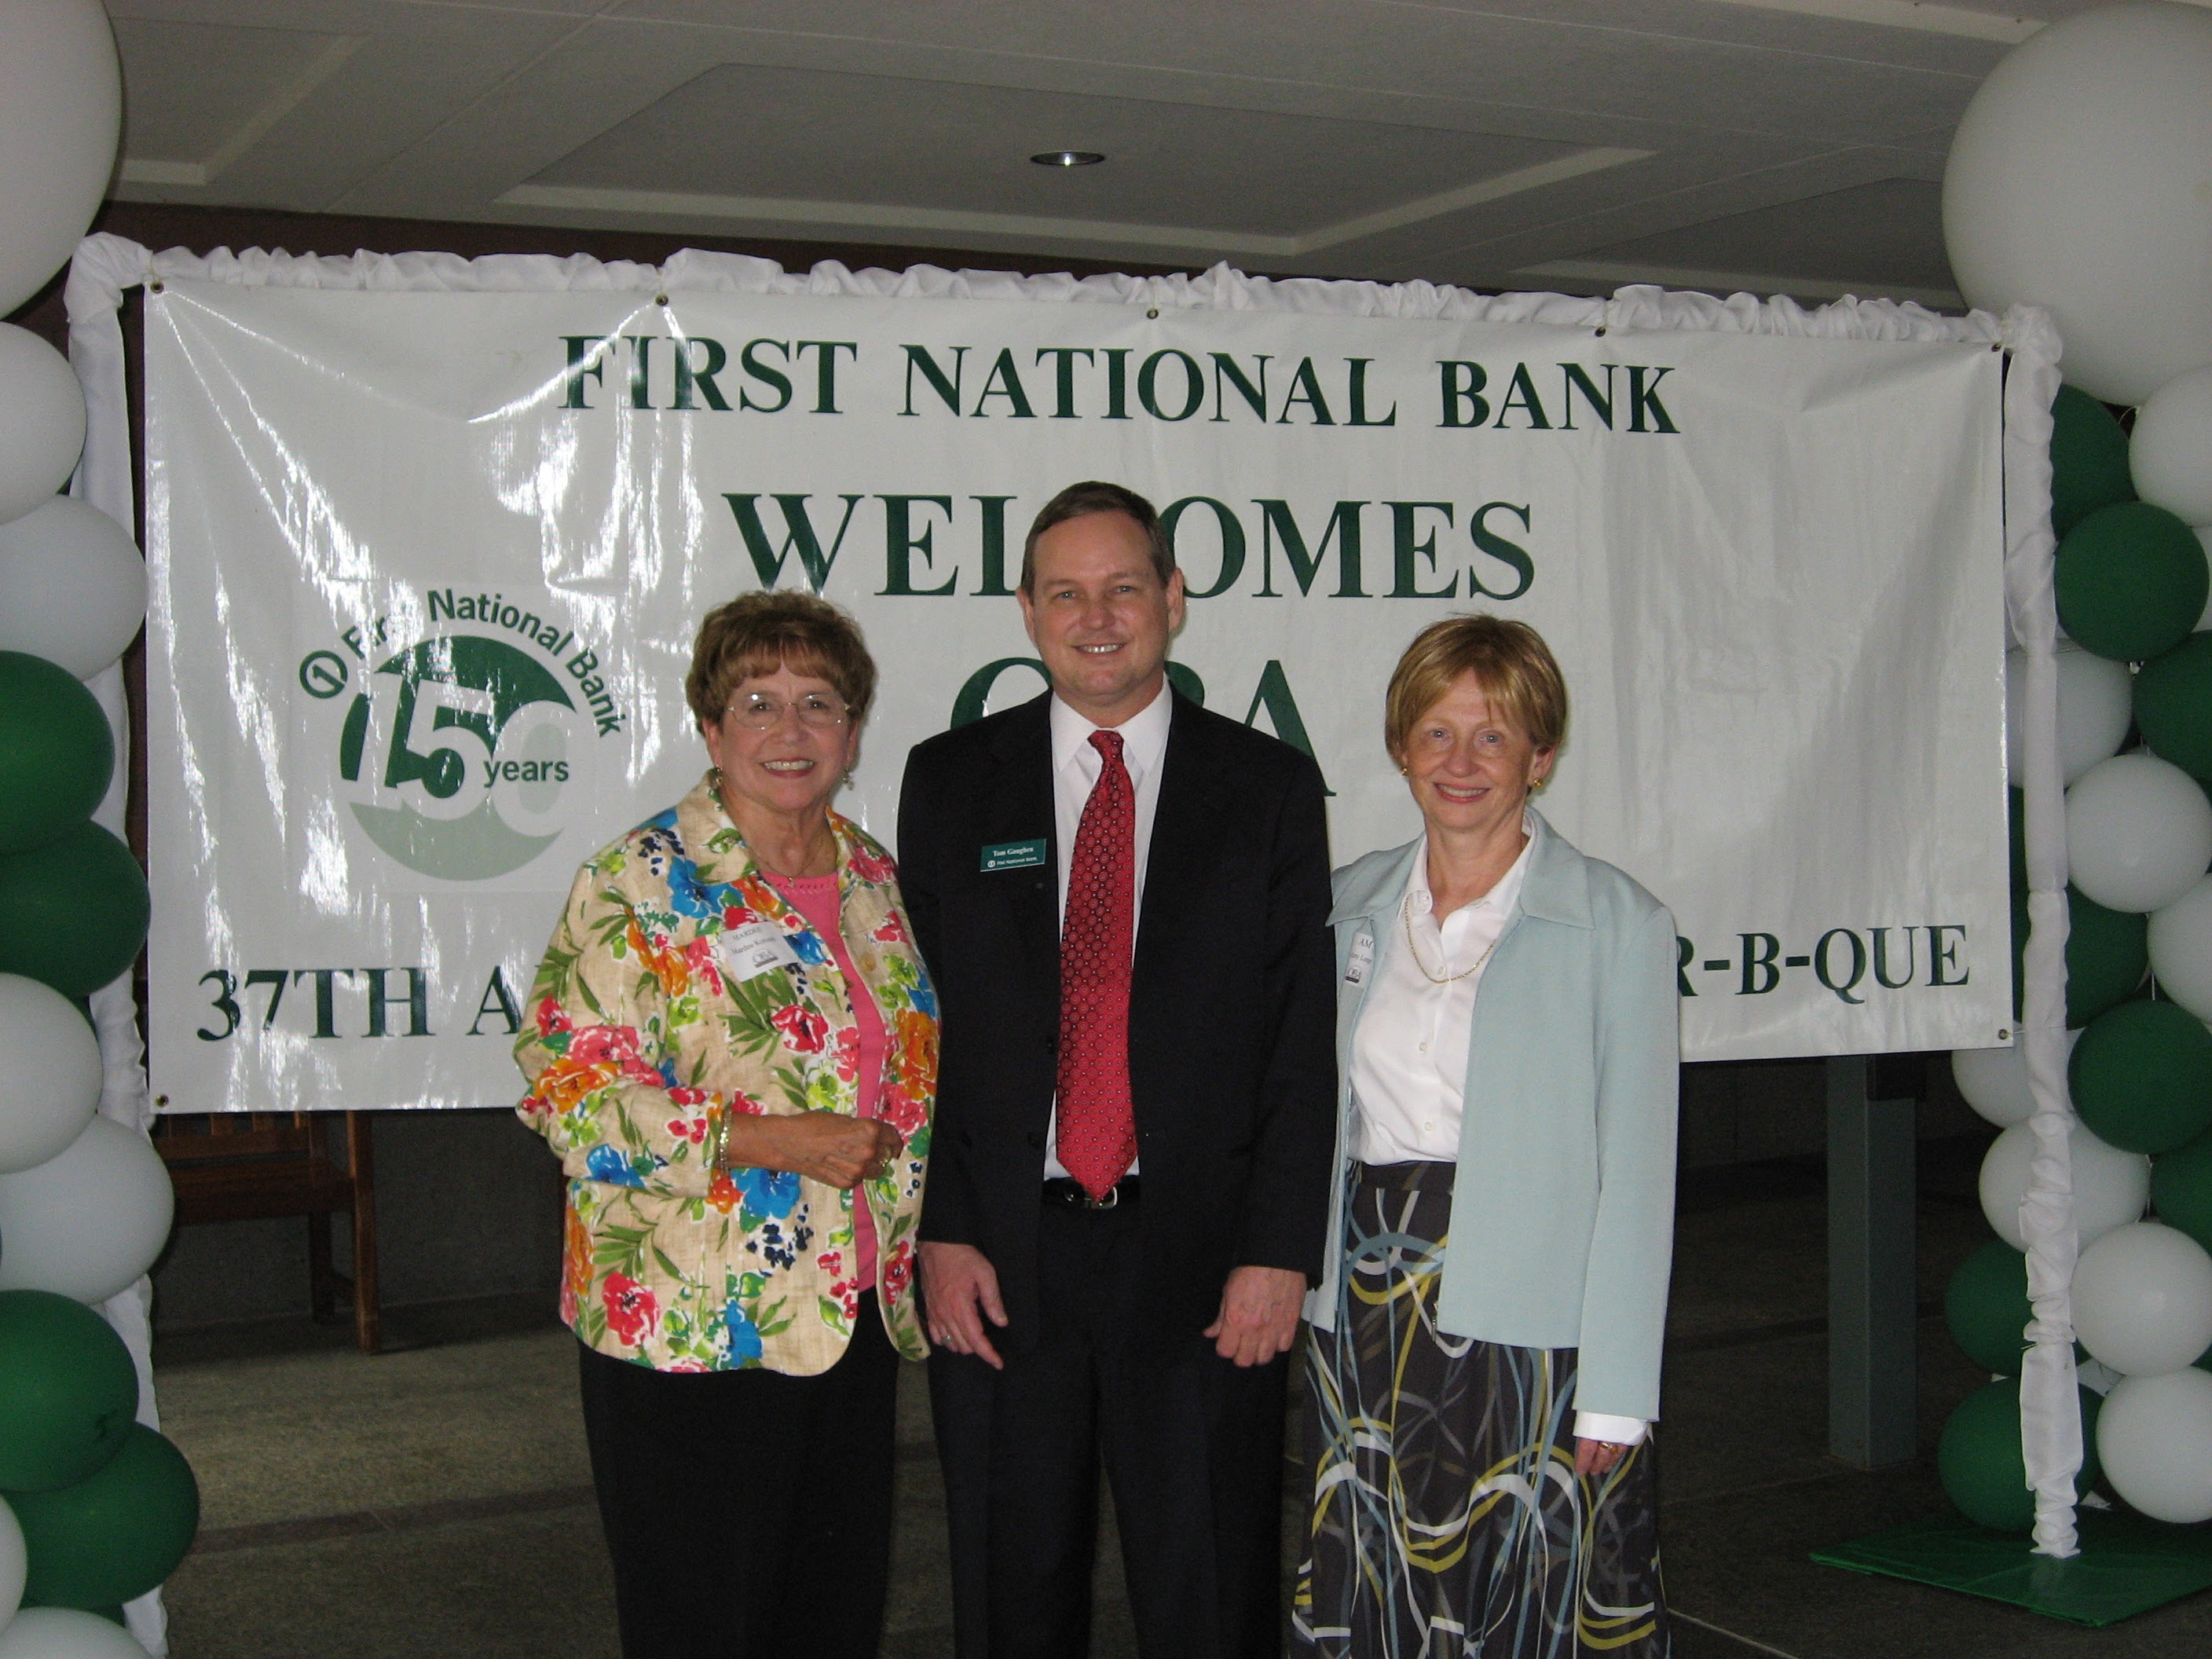 From left, Mardee Korinek, Tom Gaughen of First National Bank and OBA President Amy Longo pose for a photo at the 2006 Omaha Bar Association Fall Kickoff BBQ. (OBA)